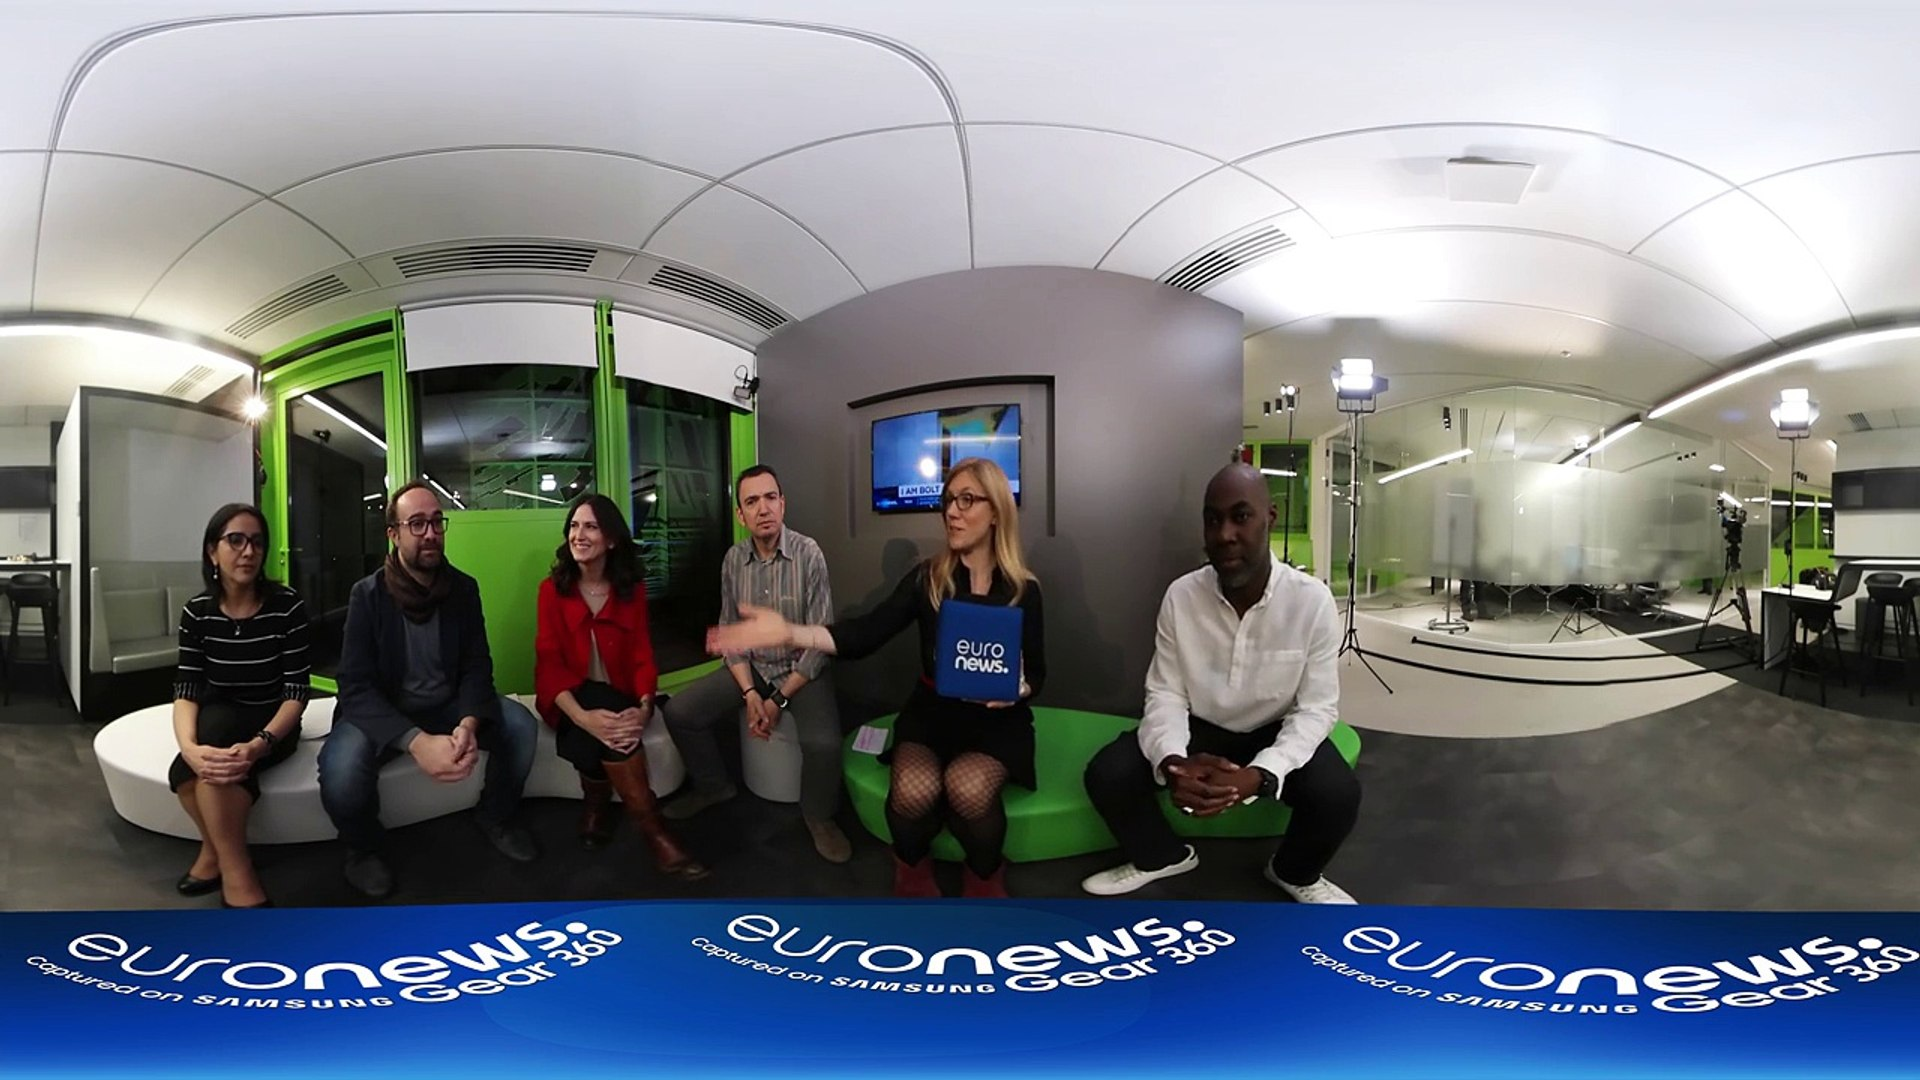 360° video: Euronews journalists on politics, media, and fake news in 2016